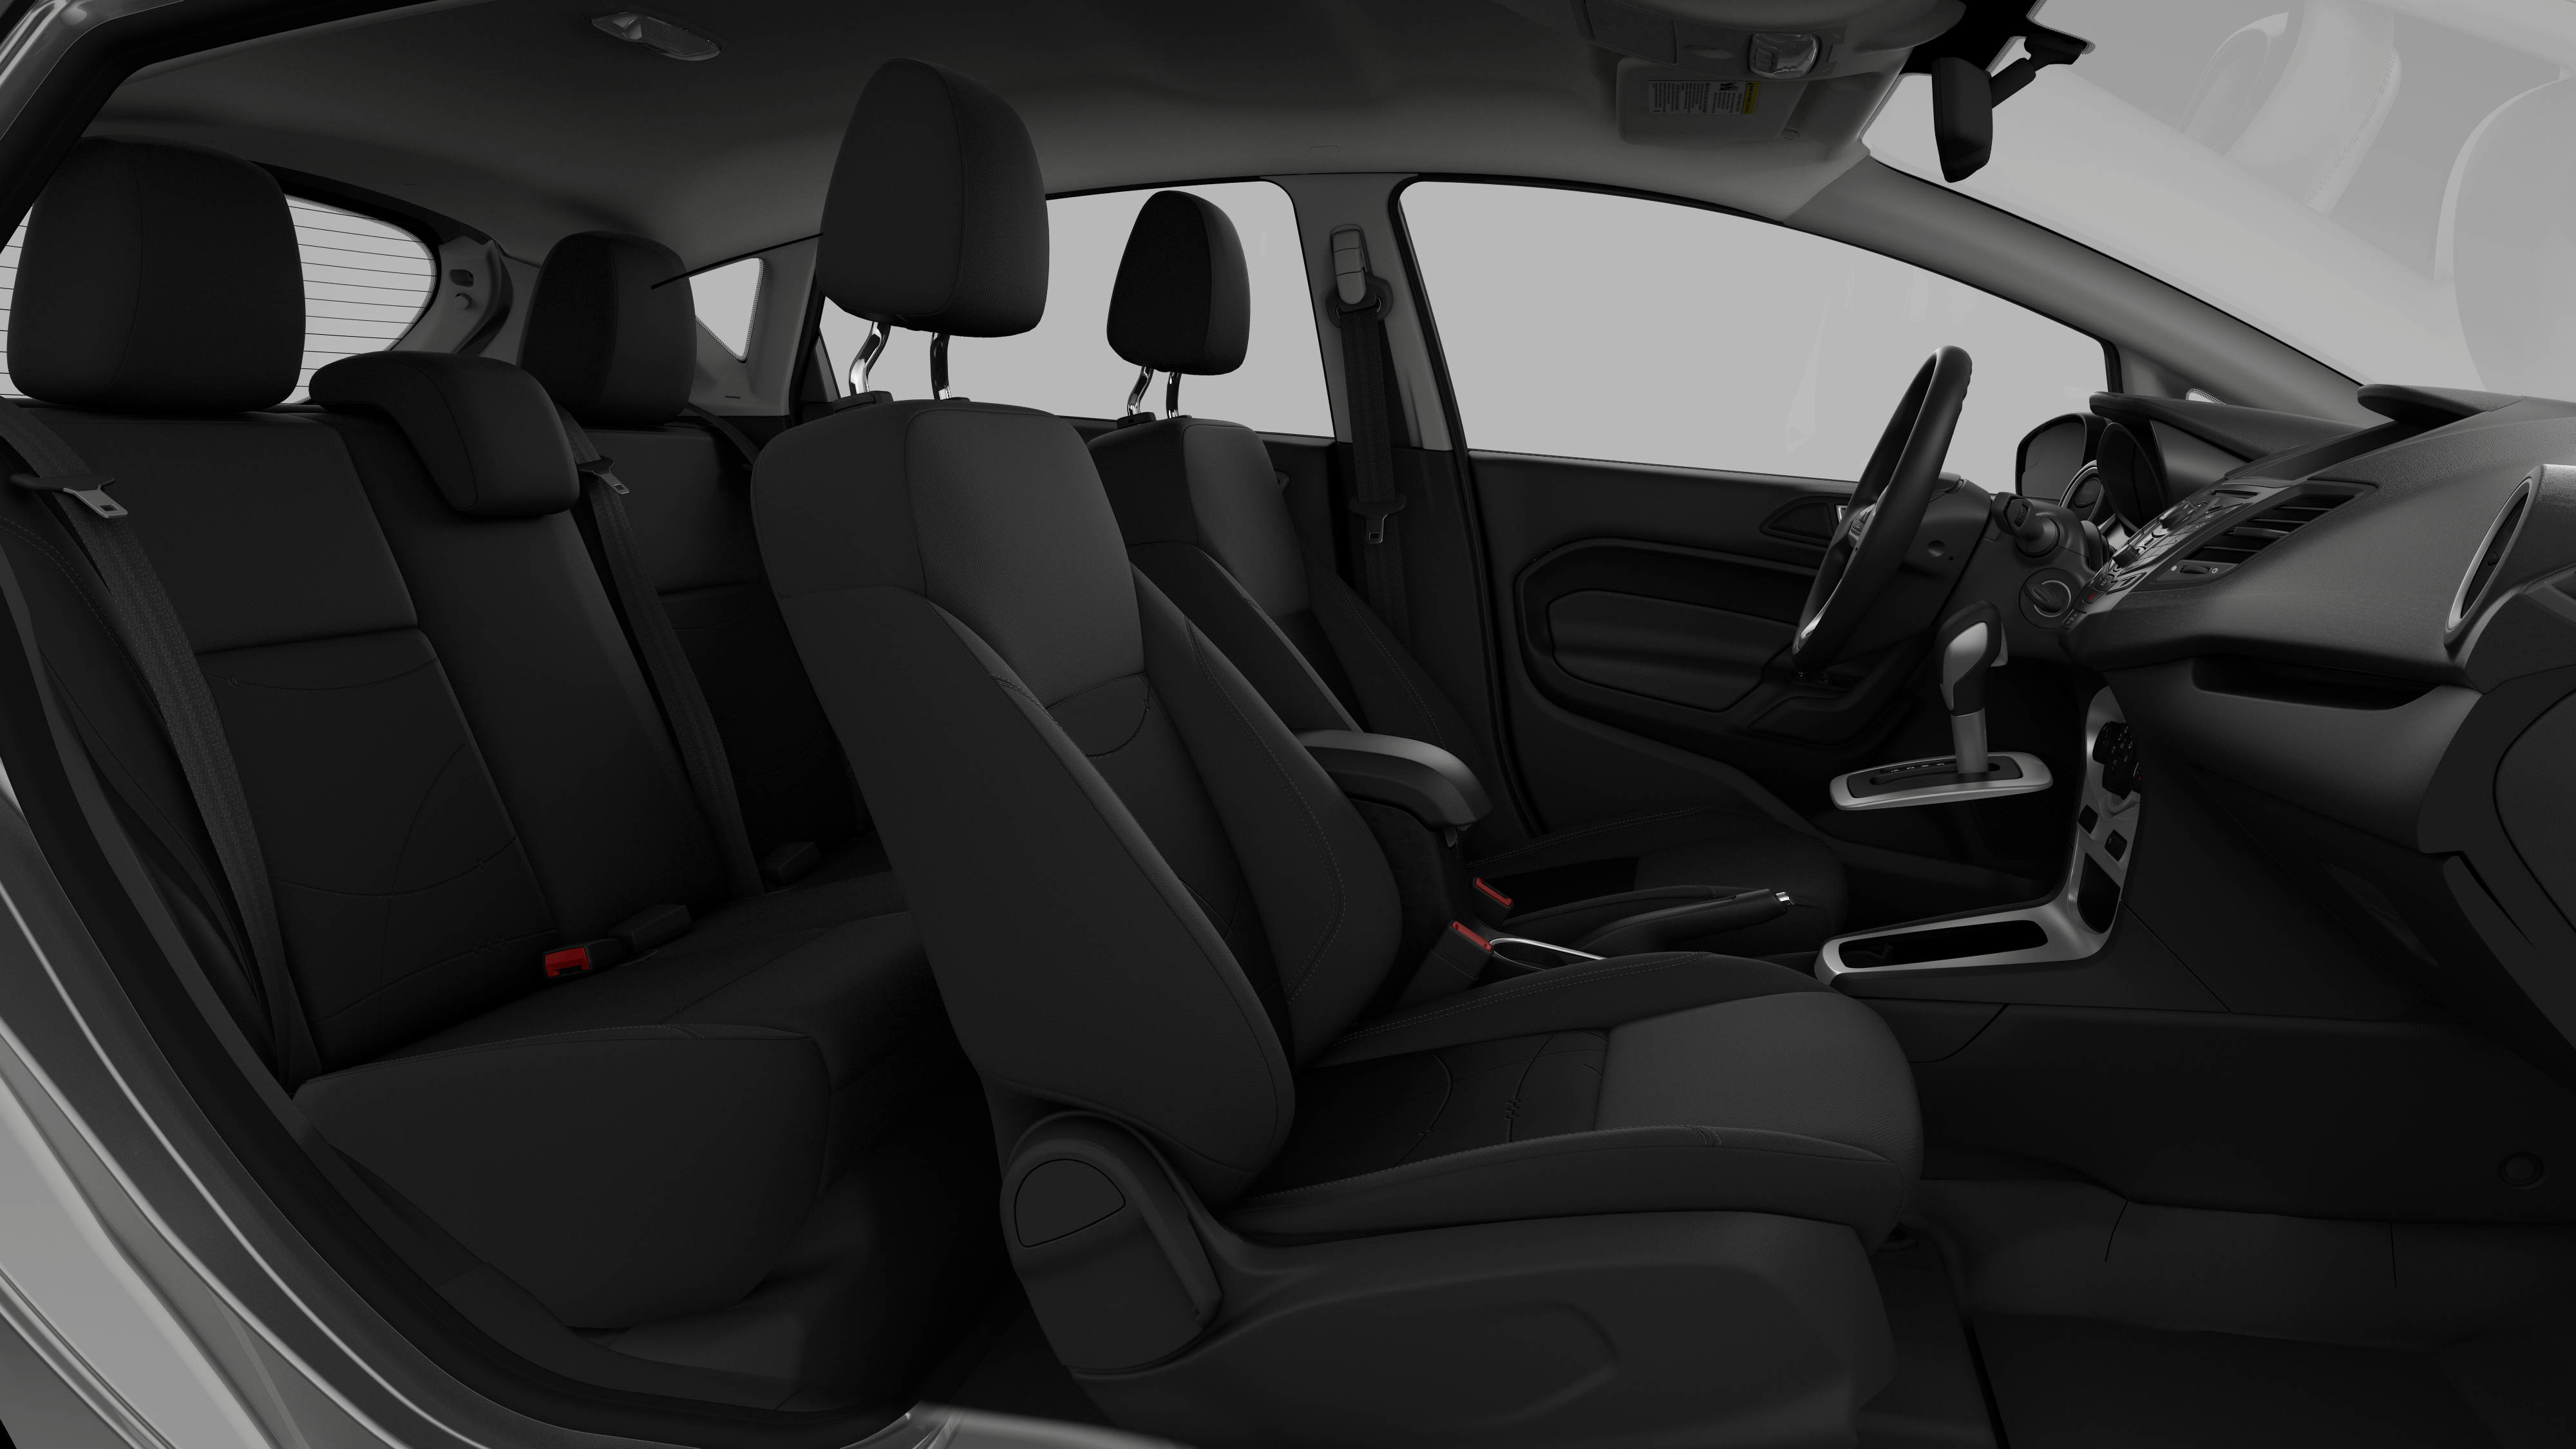 2019 ford fiesta for sale in natrona heights 3fadp4ej5km116628 cochran ford. Black Bedroom Furniture Sets. Home Design Ideas